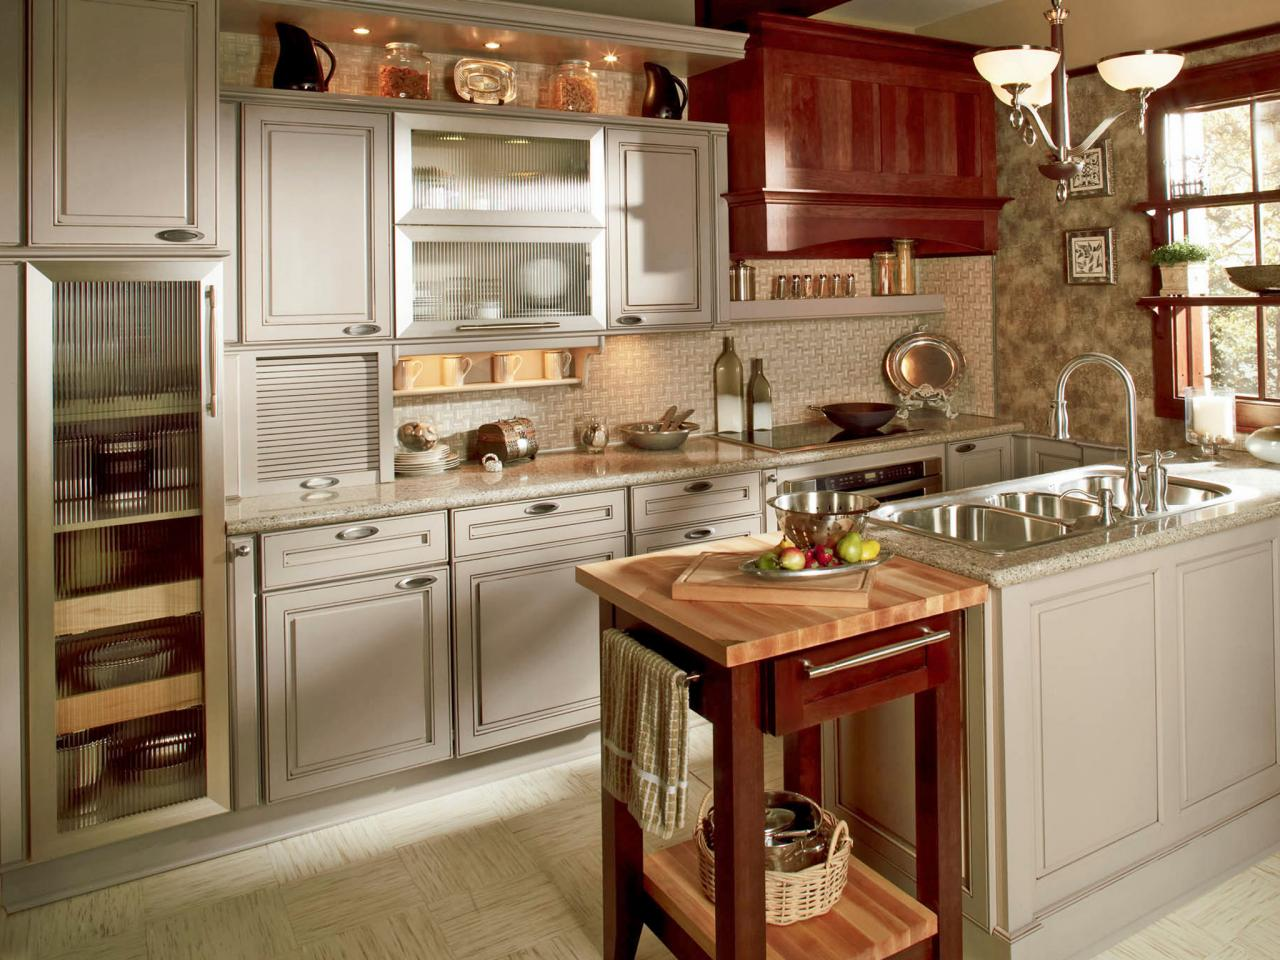 CI-Wellborn-Cabinets_soft-gray-painted-kitchen-cabinets_4x3.jpg.rend.hgtvcom.1280.960.jpeg